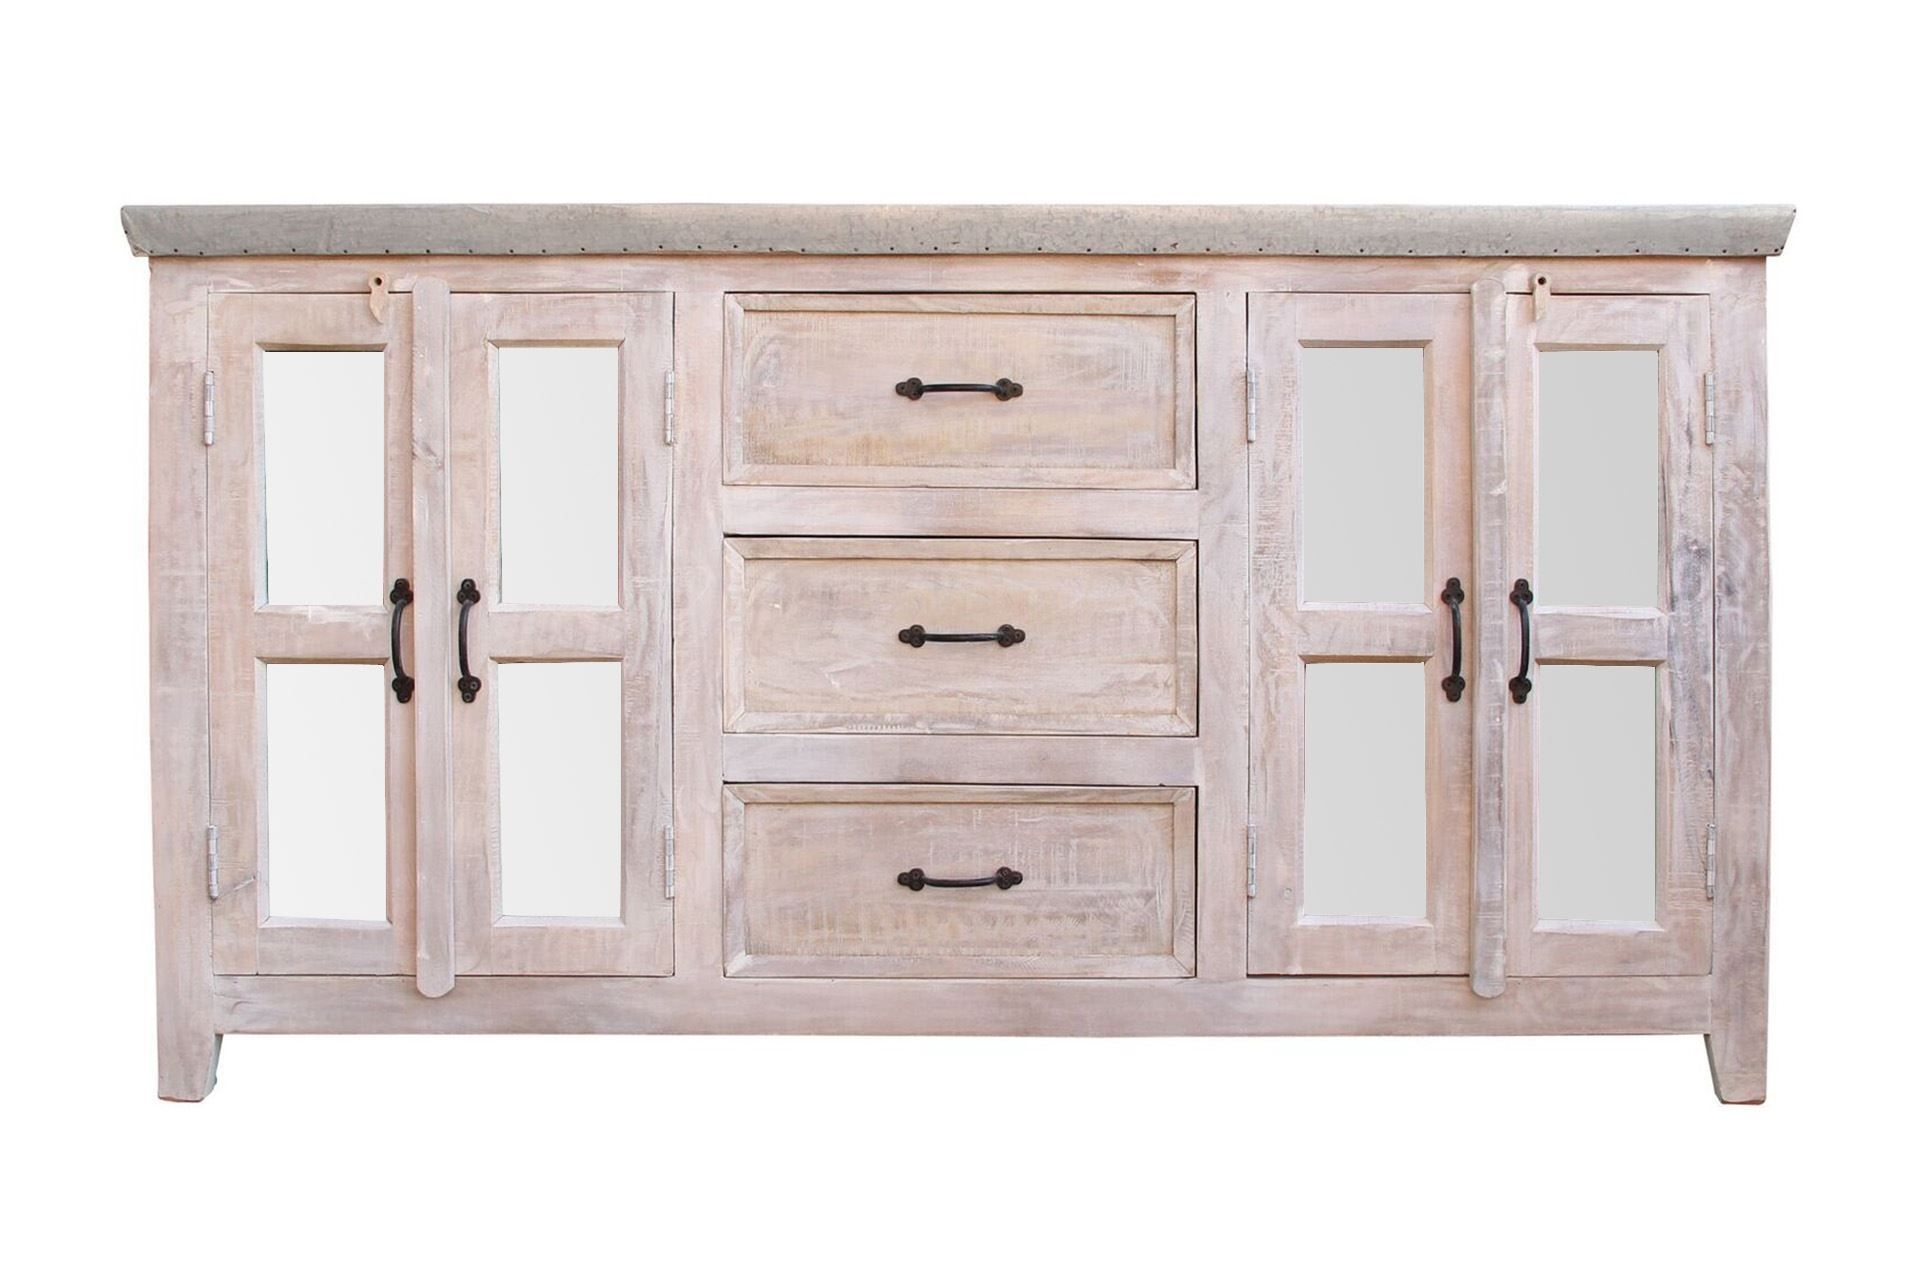 Otb White Wash 4Door3Drawer Glass Sideboard Home for Neeja 3-Door Sideboards (Image 12 of 23)